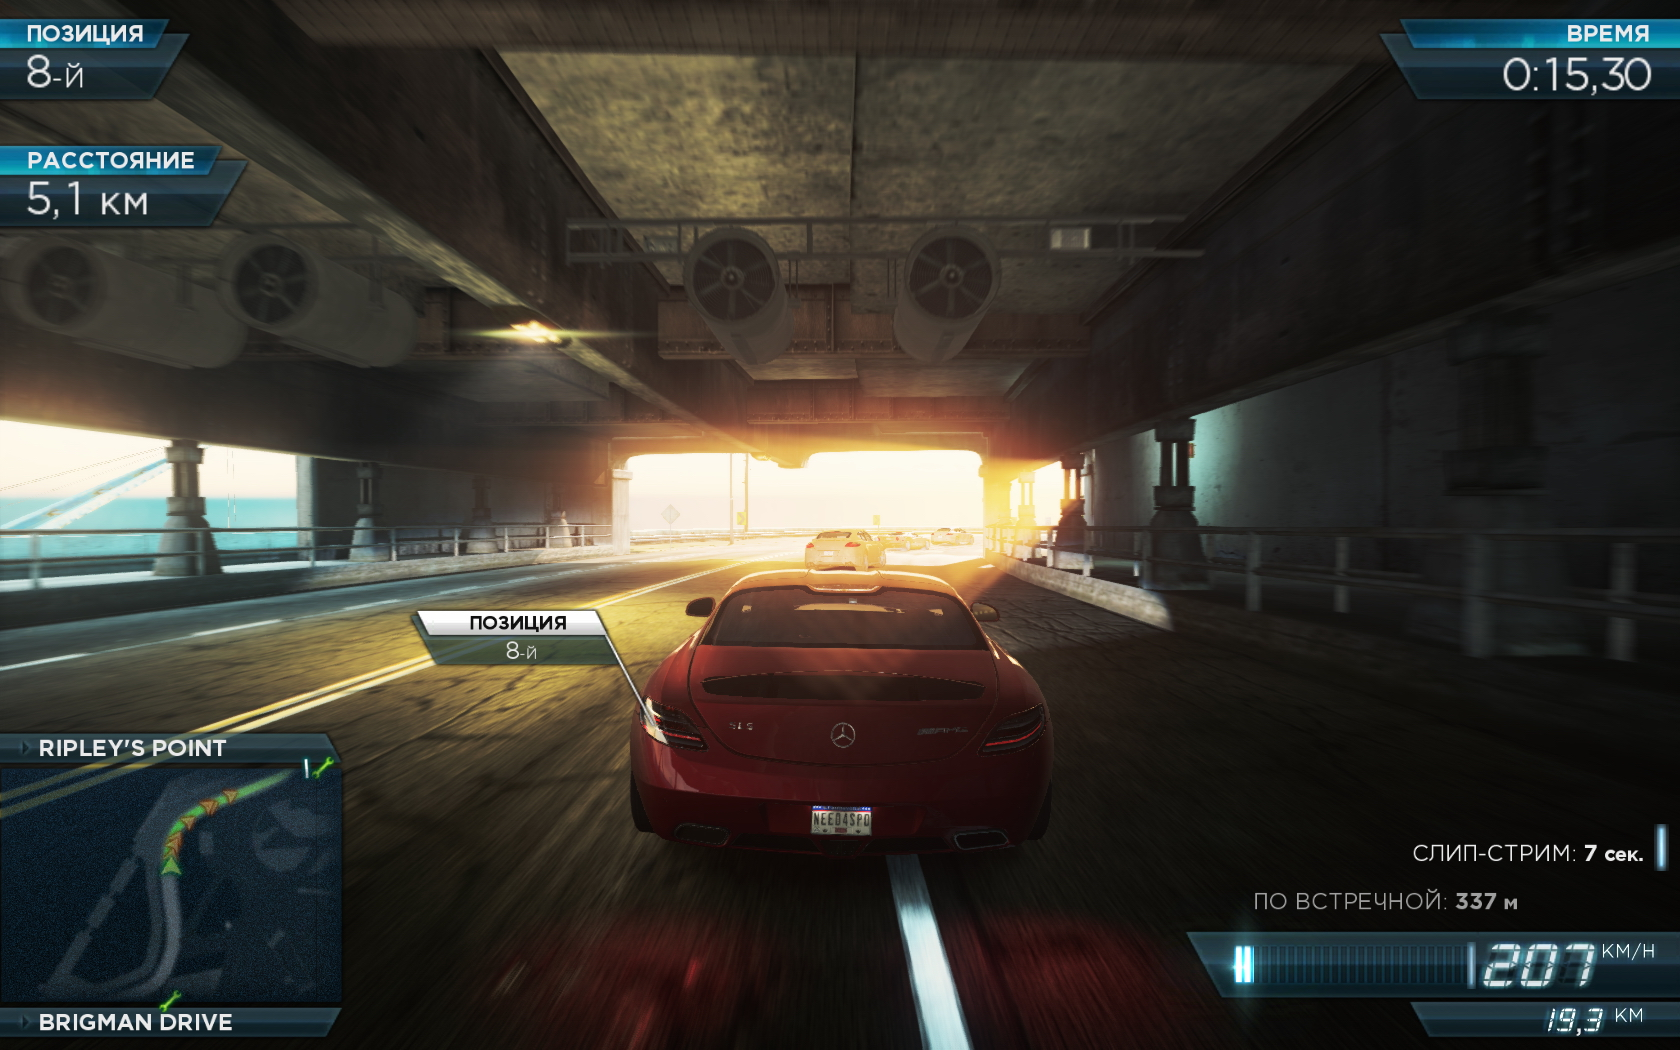 Need for speed most wanted 2012 рецензия 7634